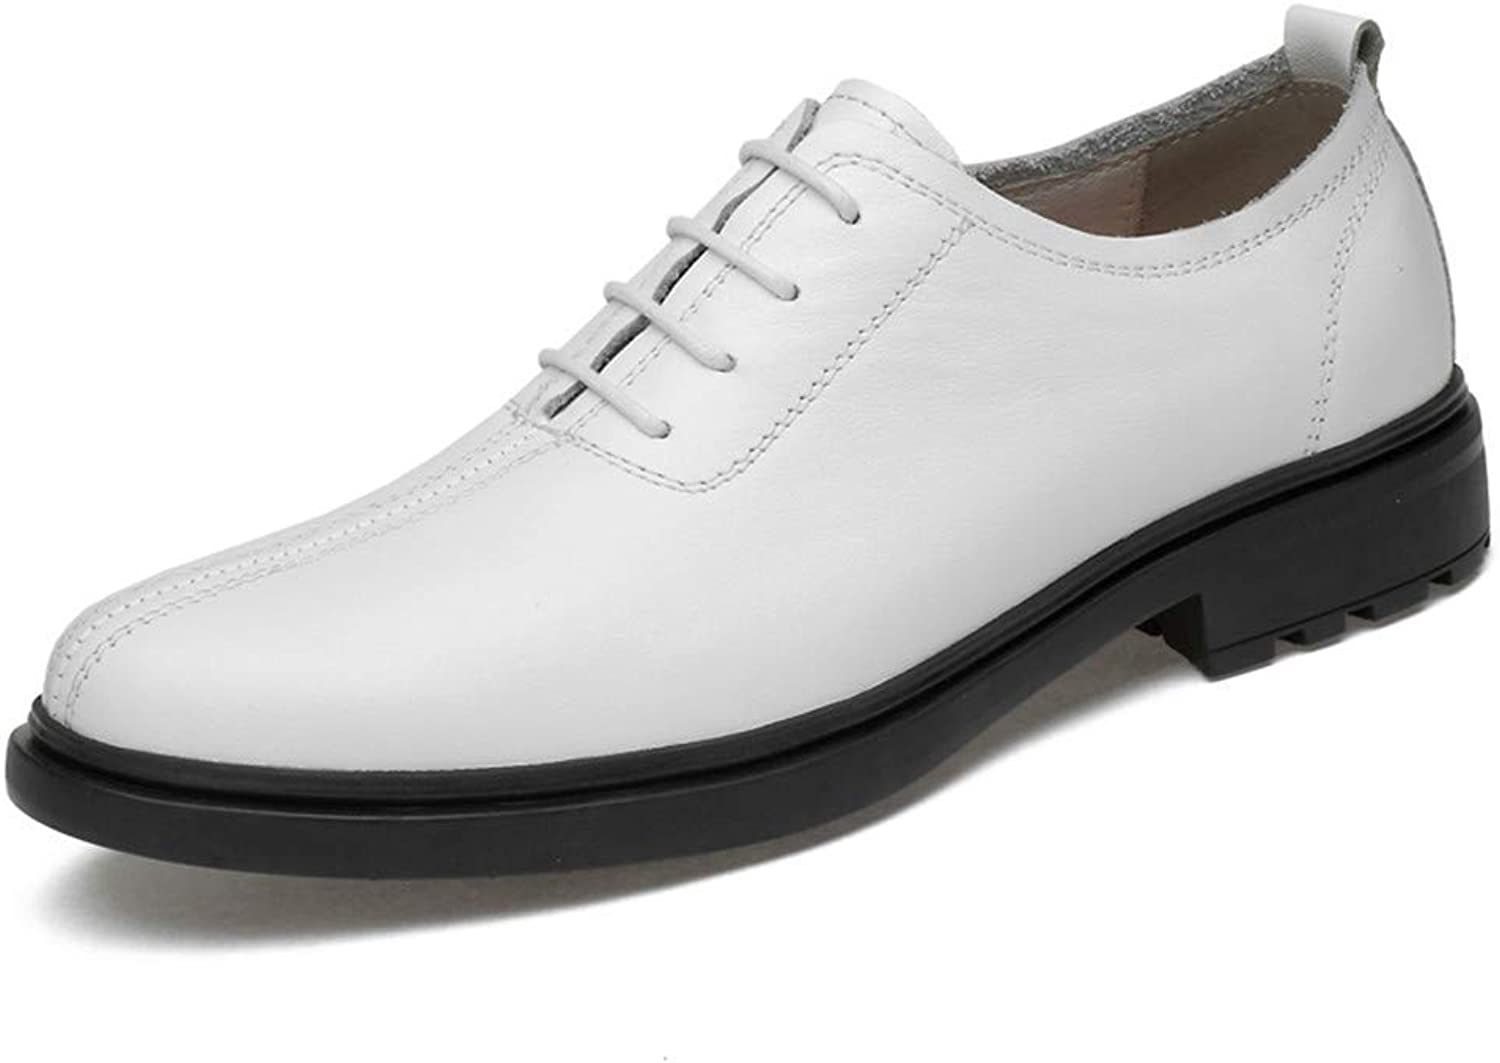 2018 Männer Business Oxford Schuhe, Casual Casual Casual Soft Light Herren Atyle Low Top Runde Formale Schuhe (Farbe   Schwarz, Größe   39 EU) (Farbe   Weiß, Größe   40 EU)  d831d4